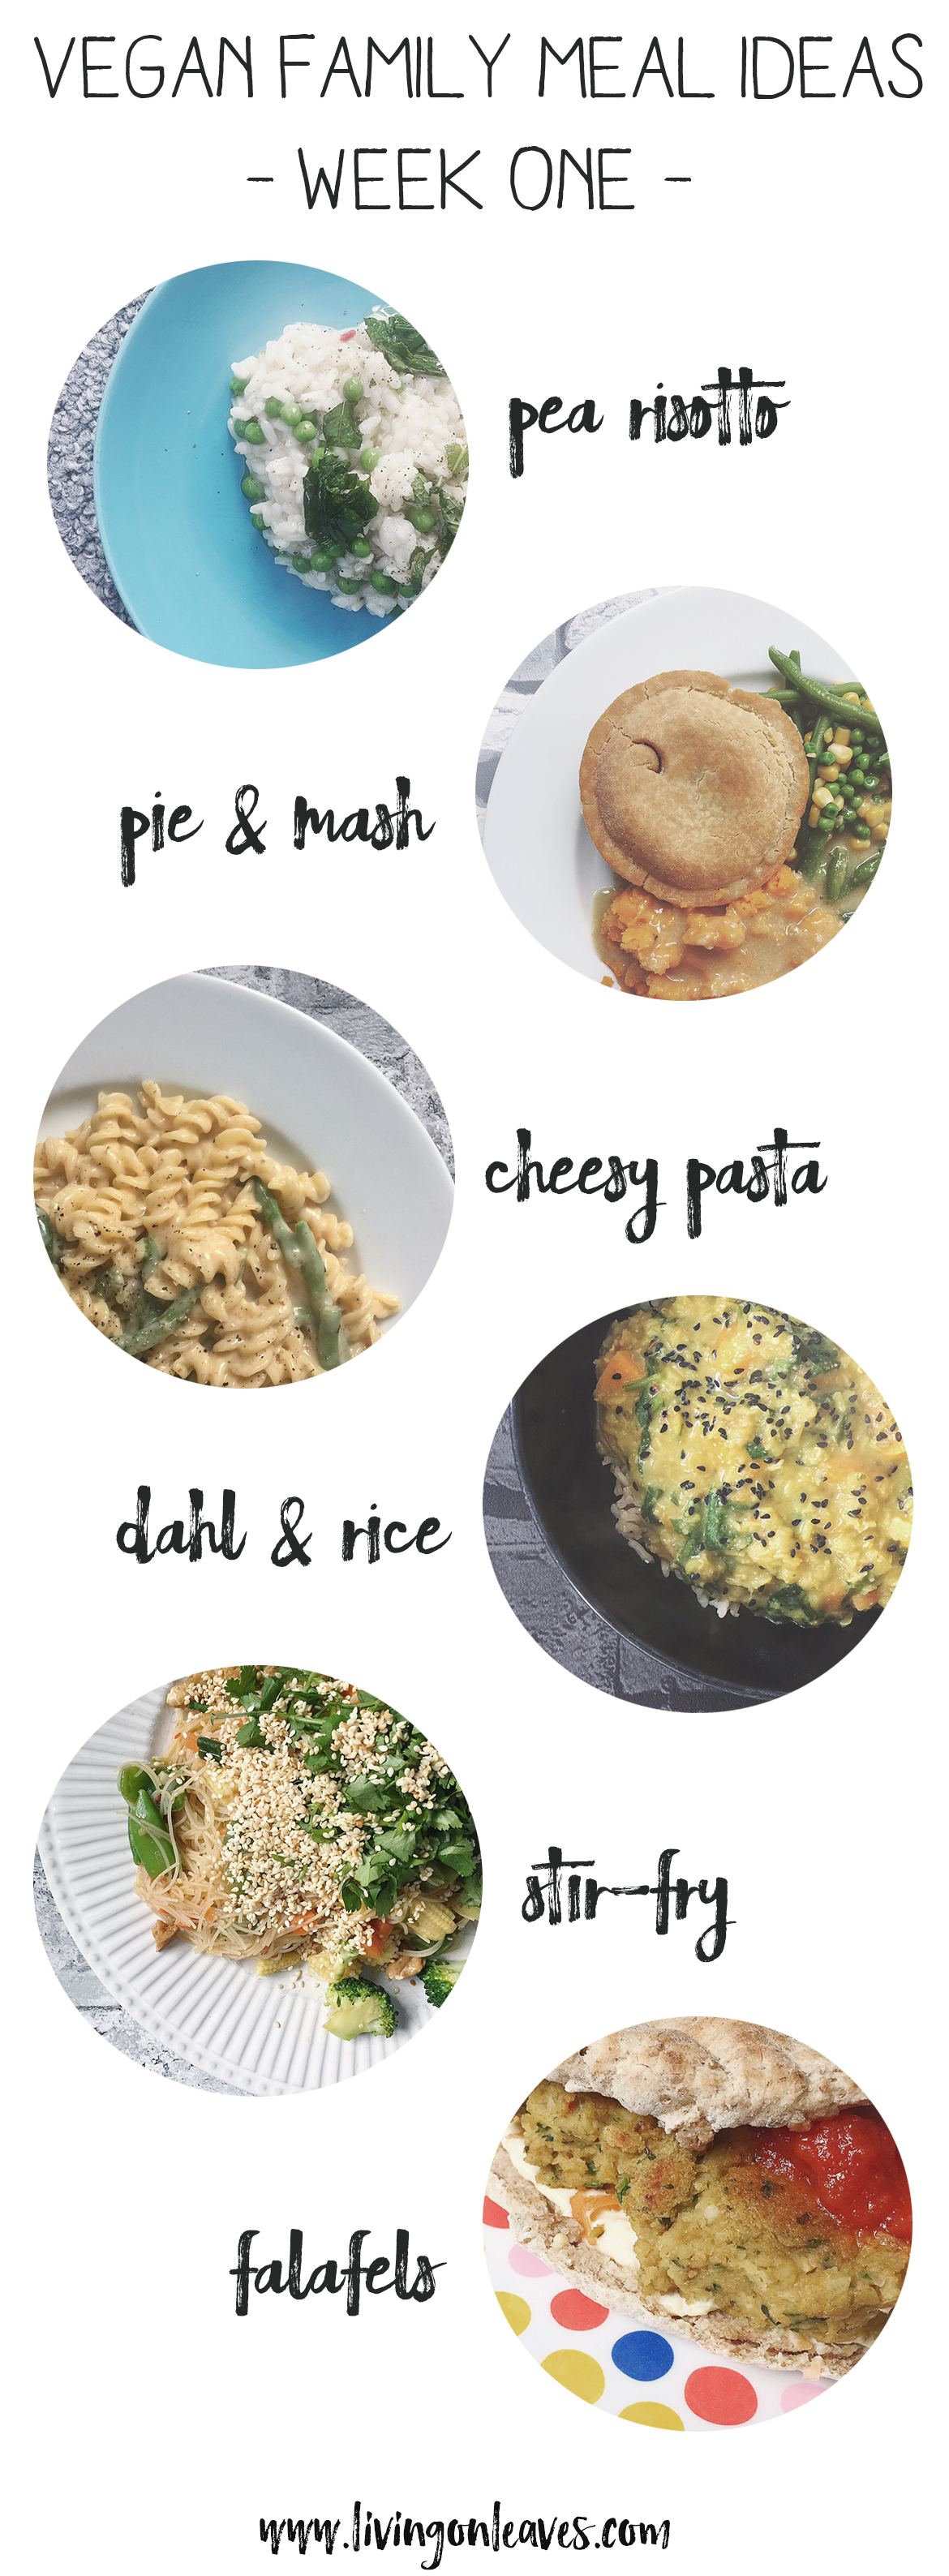 plant based family meal ideas